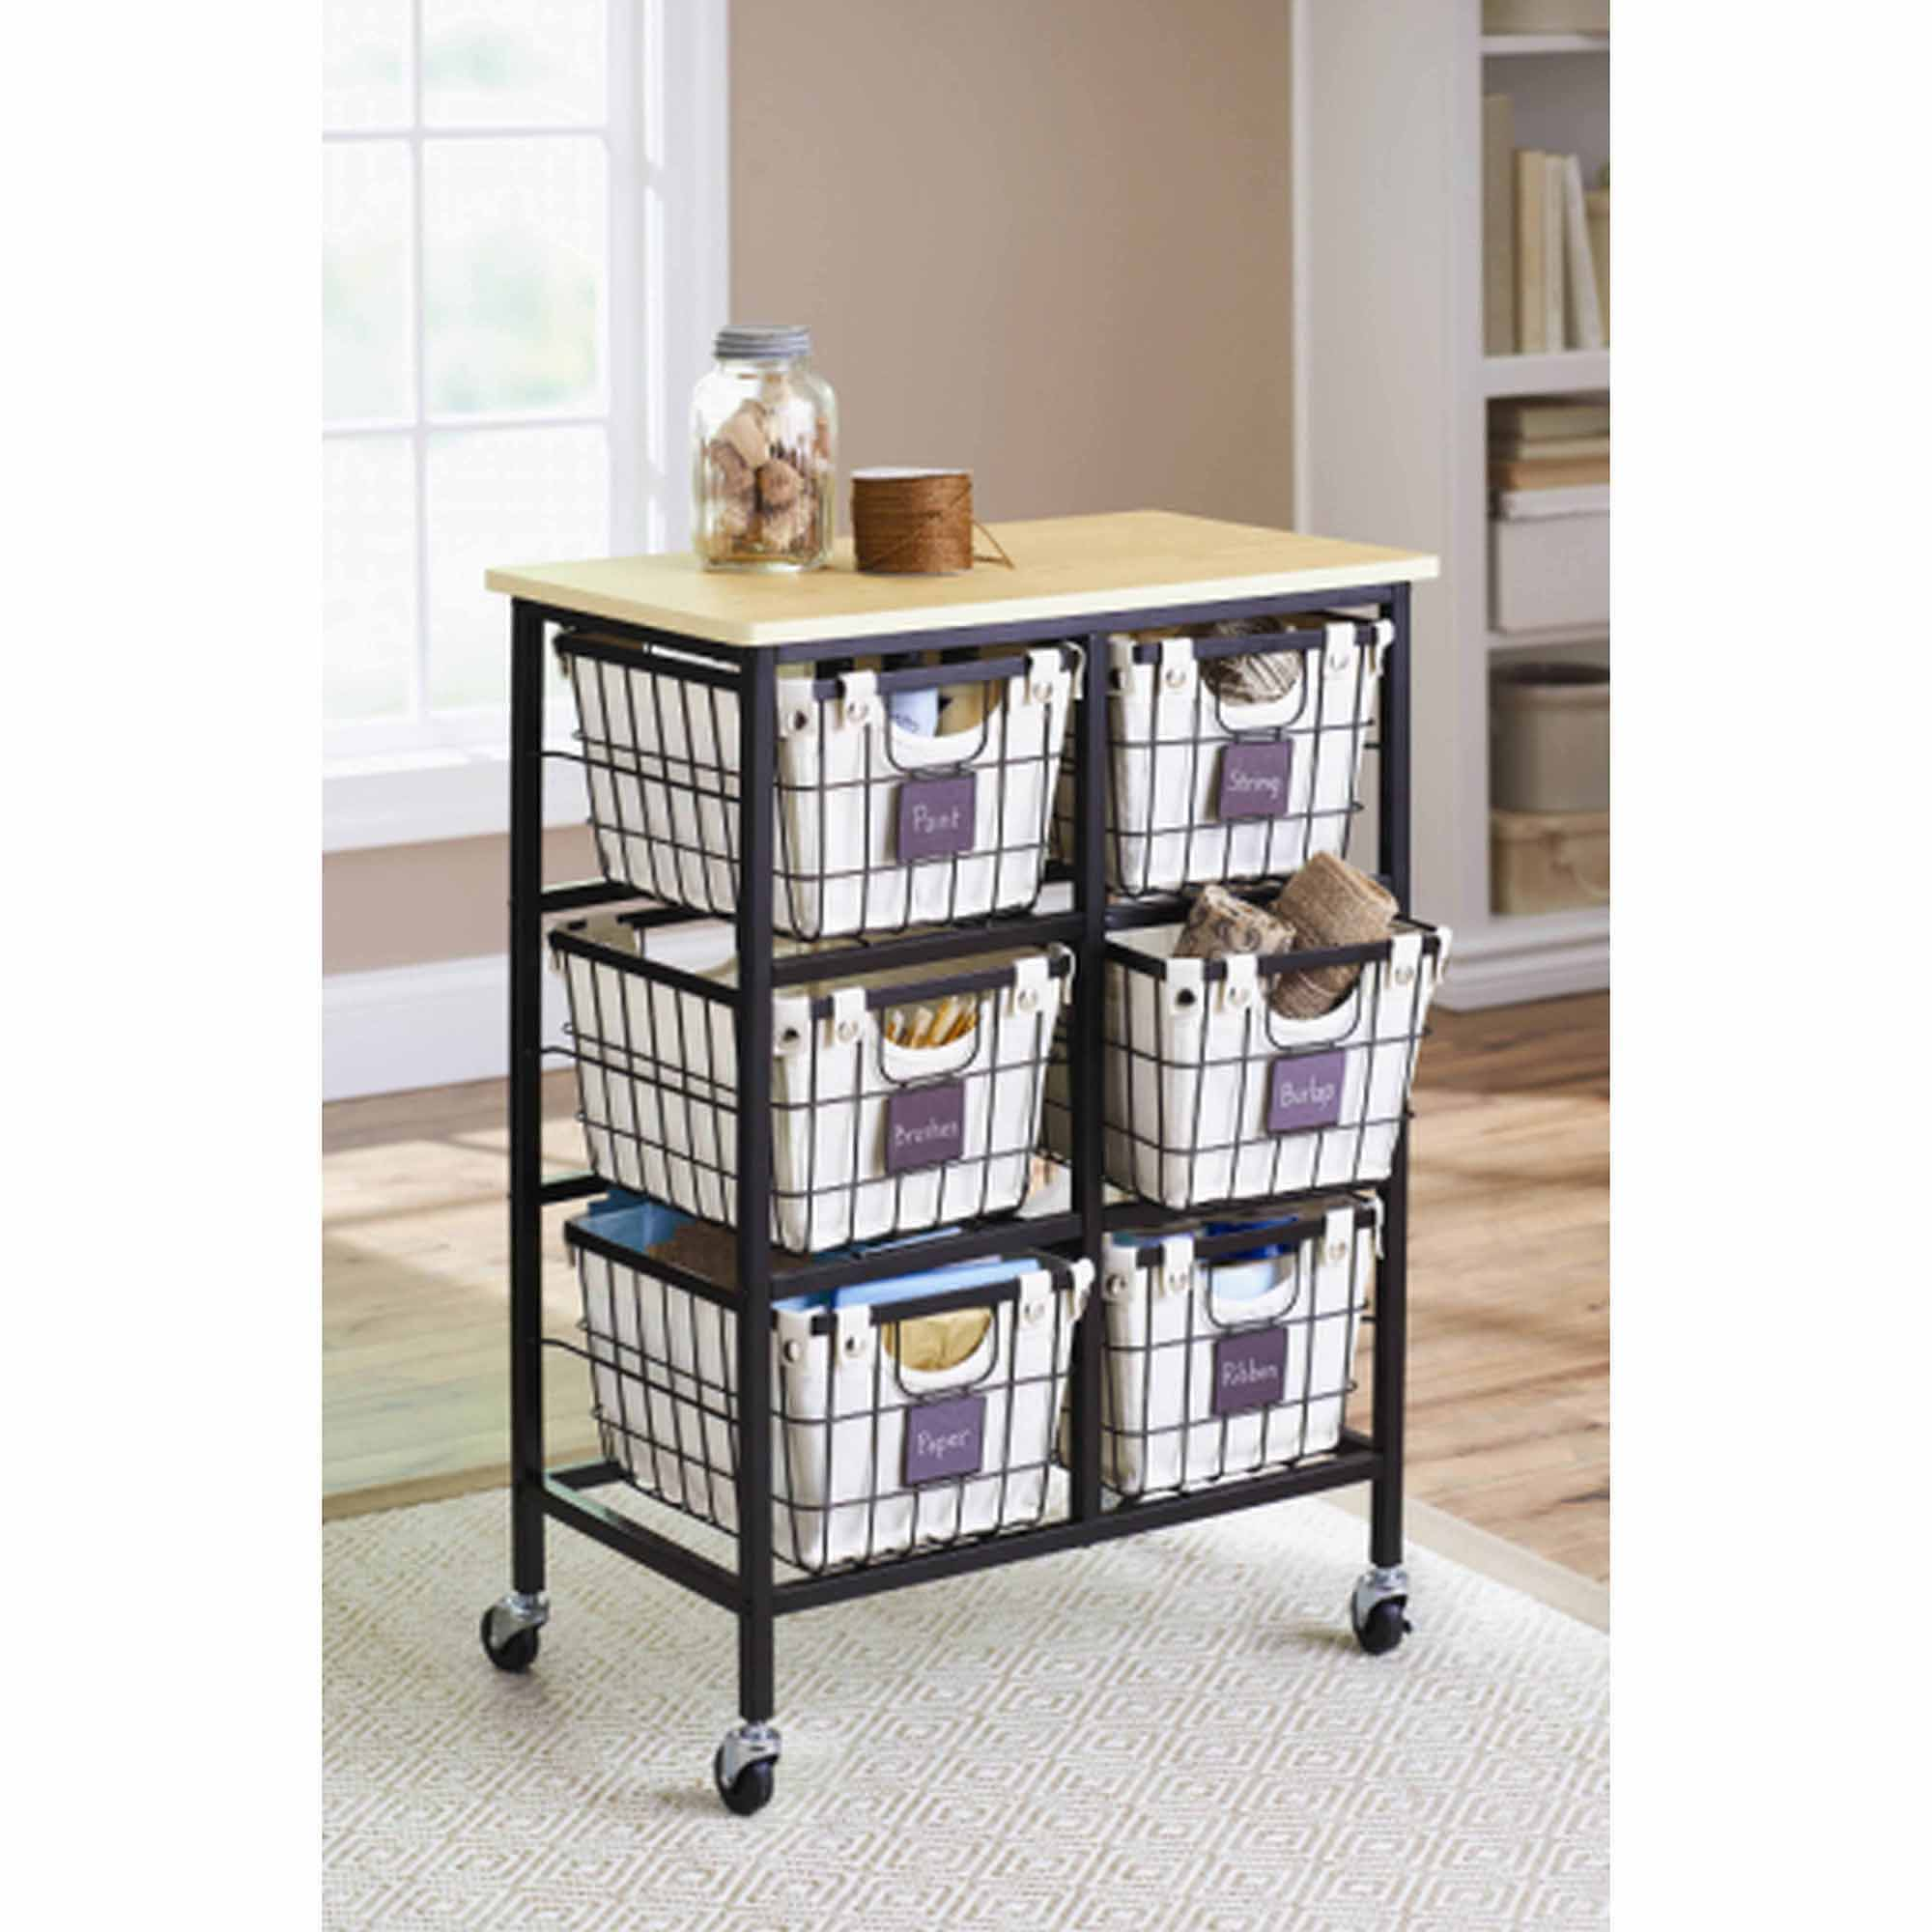 Better Homes and Gardens 6-Drawer Wire Cart, Black $54.97